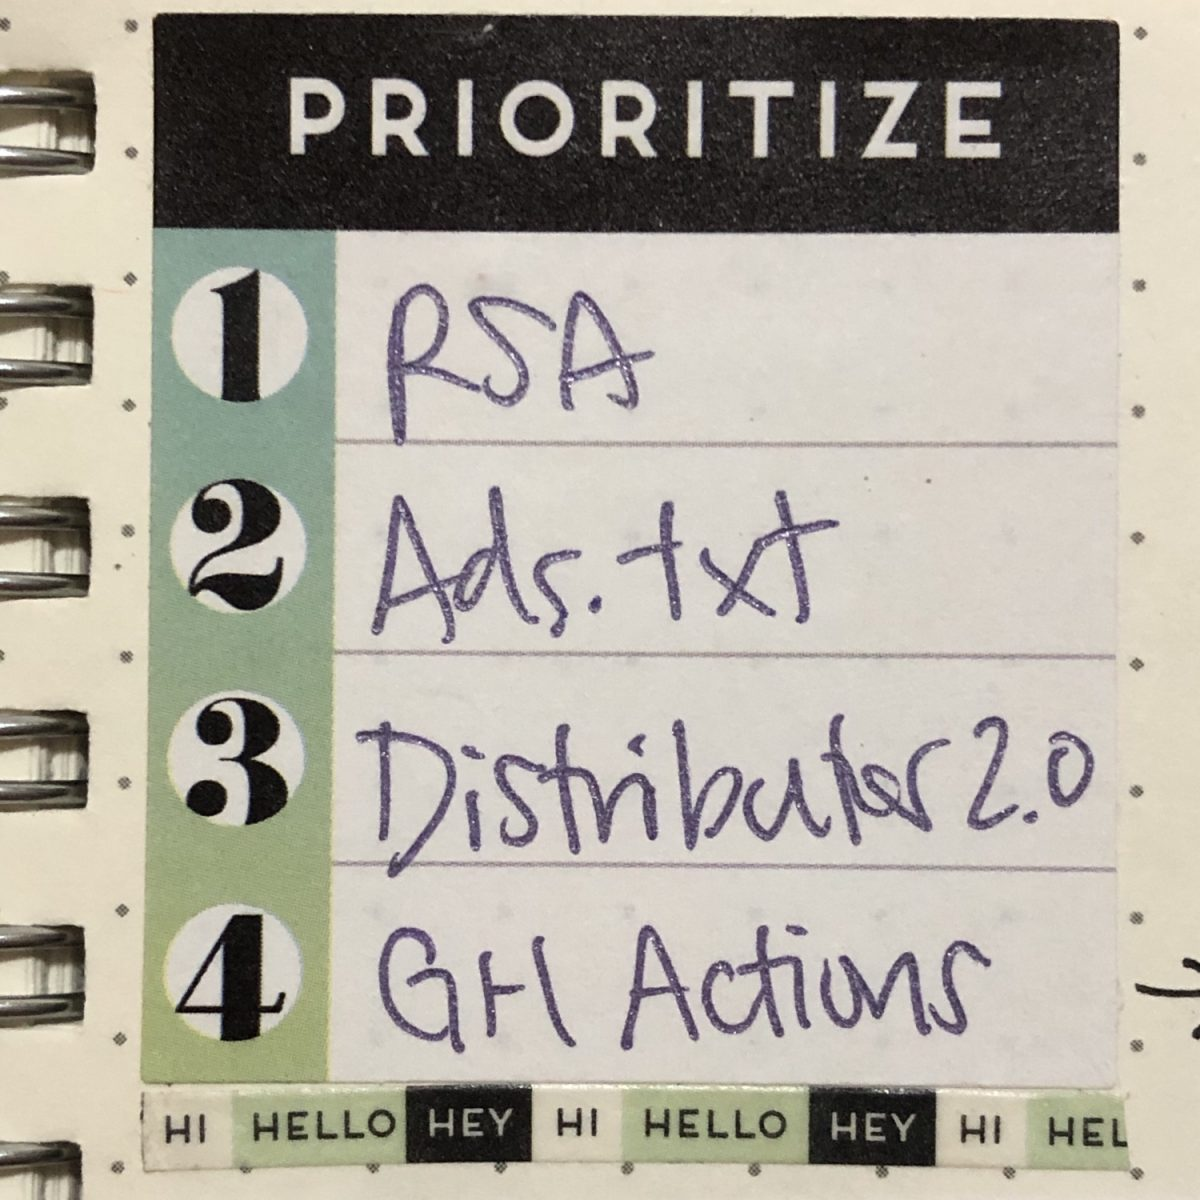 Top 4 priorities sticker